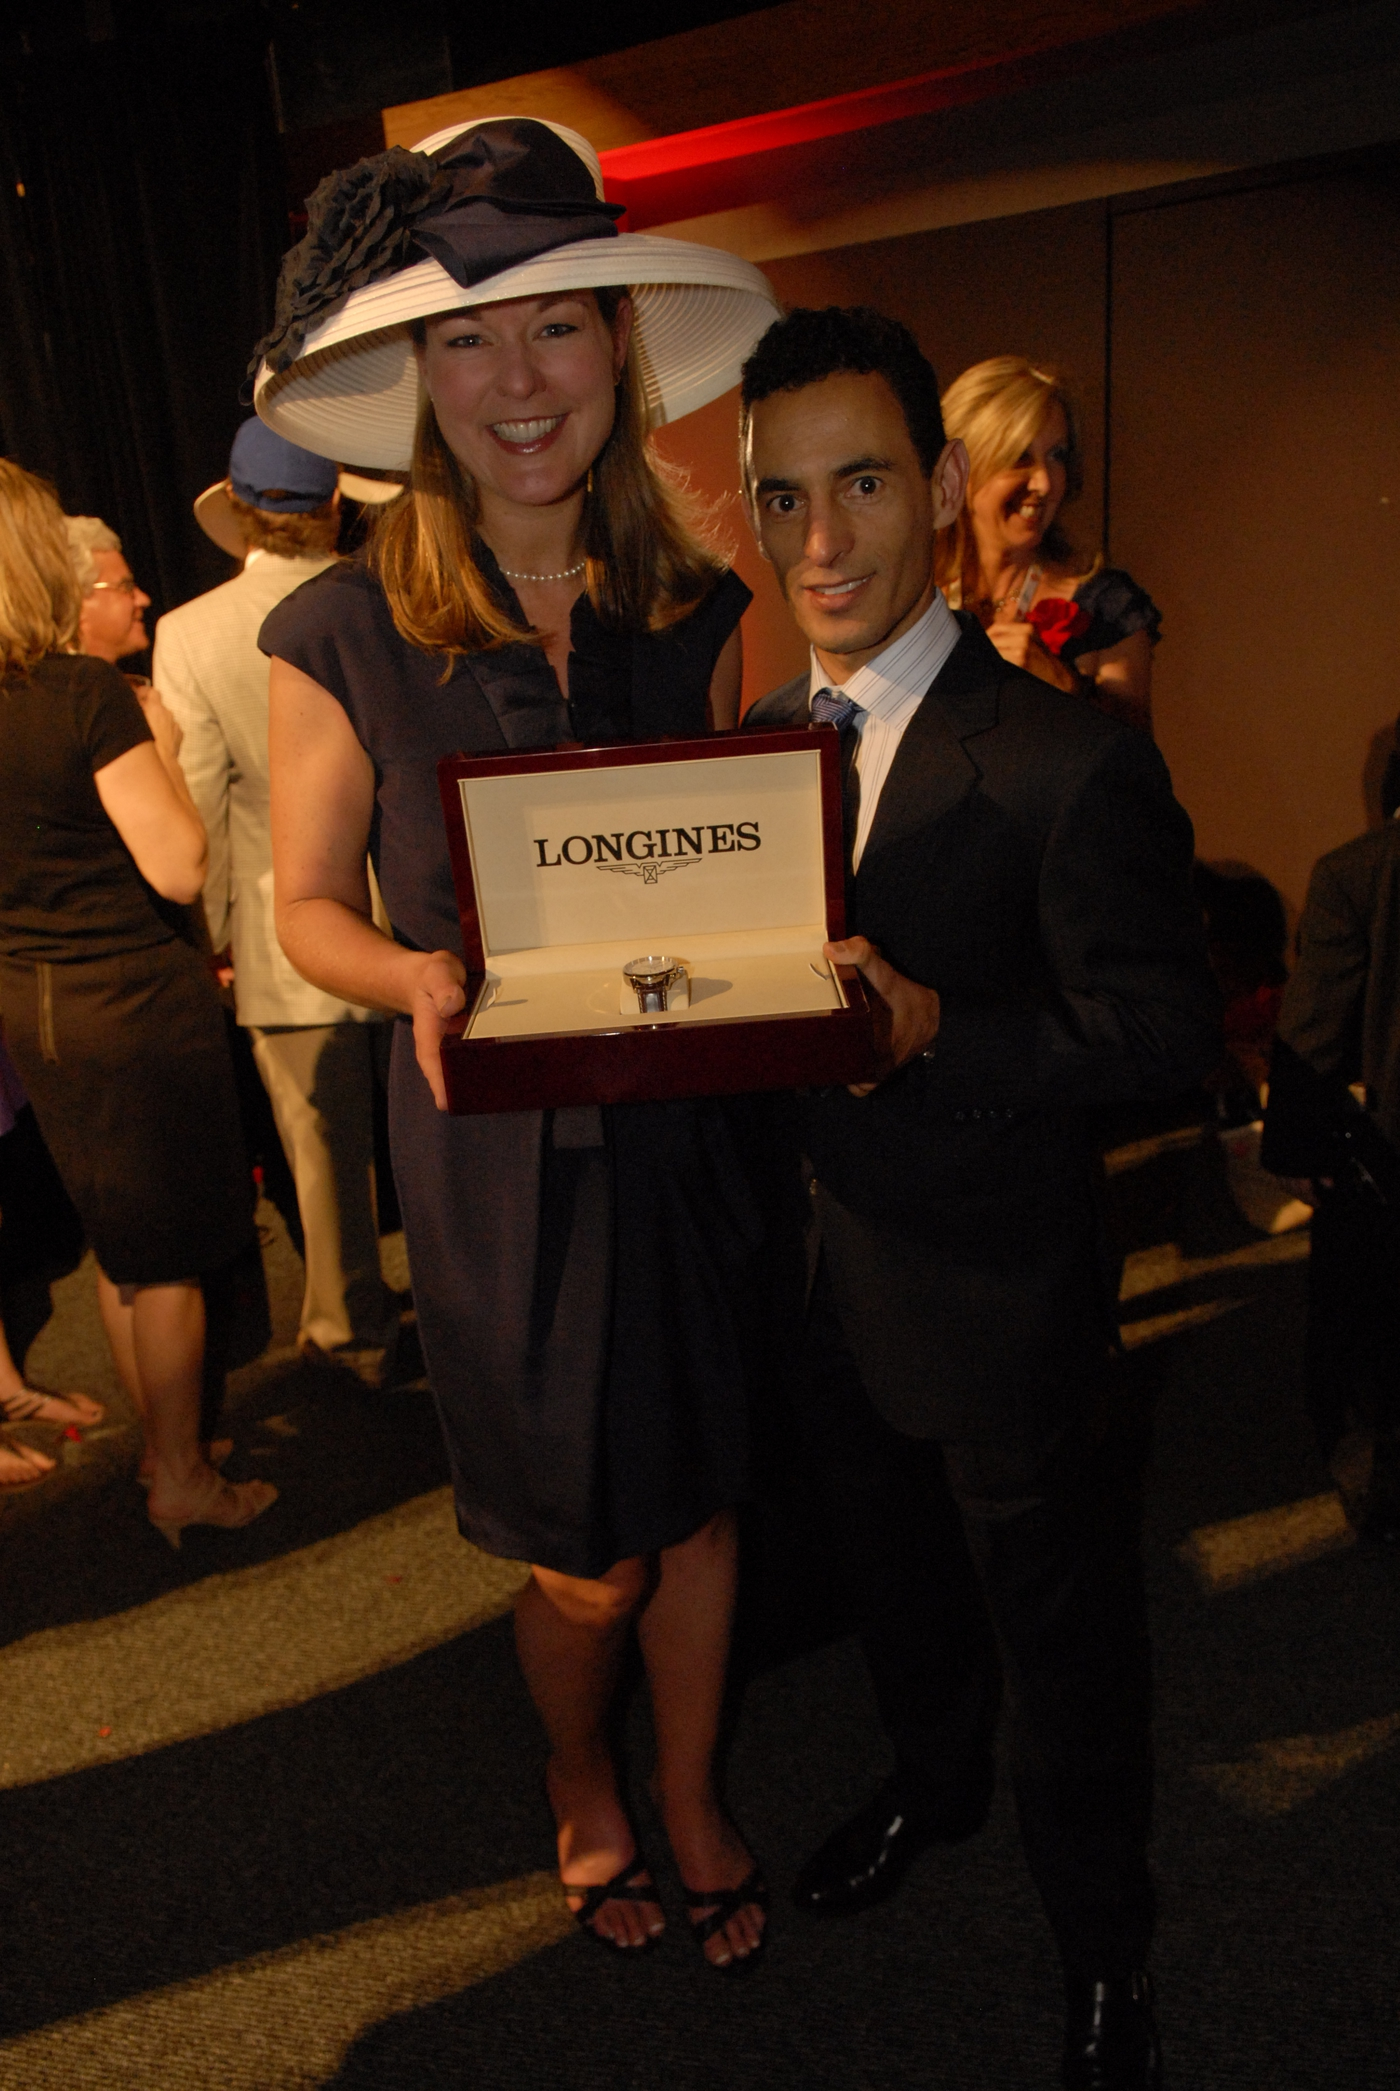 Longines Flat Racing Event: LONGINES WATCHES PRESENTED TO OWNER, TRAINER AND JOCKEY OF KENTUCKY DERBY WINNER 7